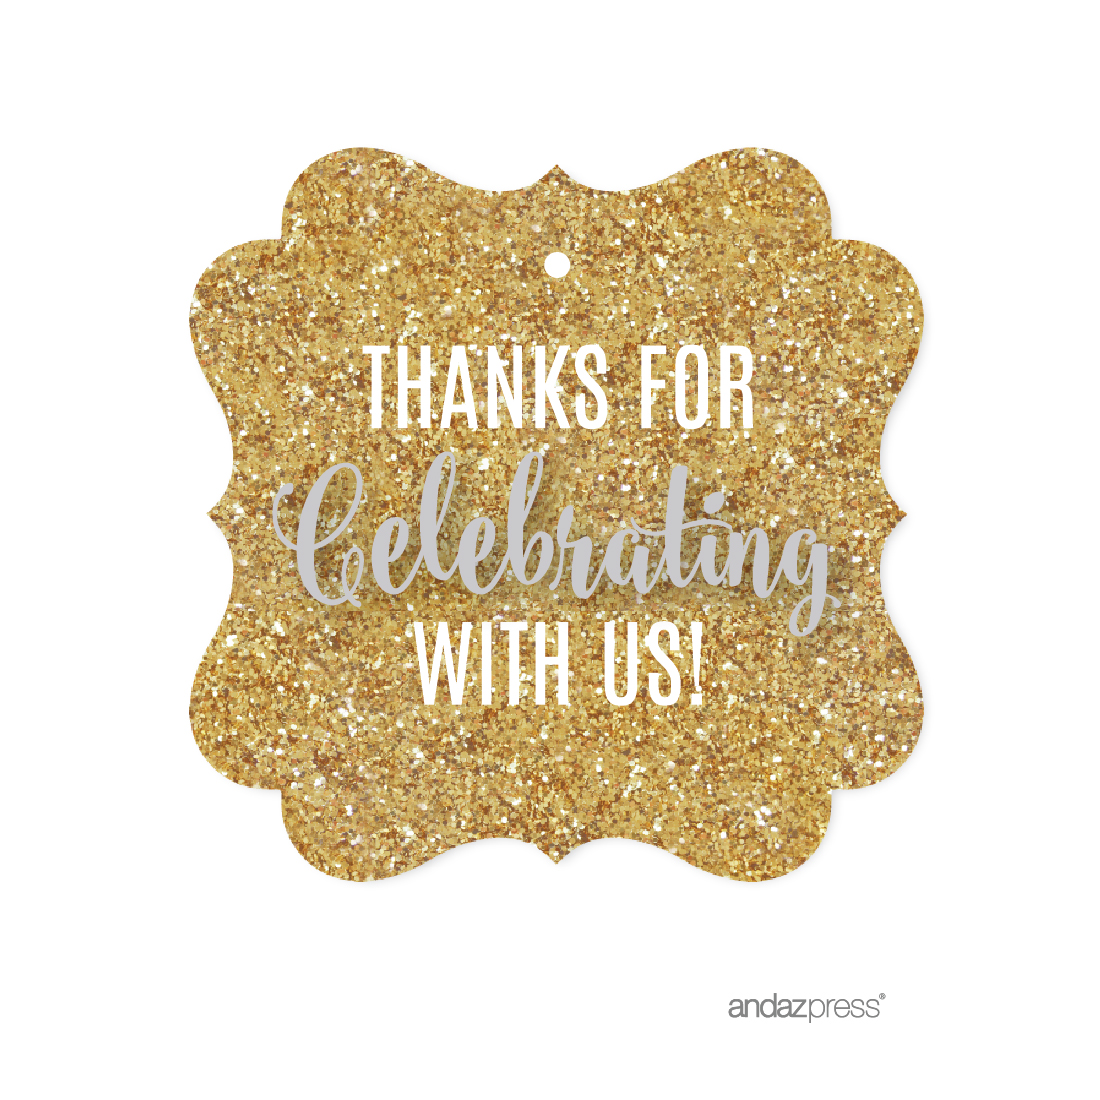 Signature Light Gray, White, Gold Glittering, Fancy Frame Gift Tags, Thanks for Celebrating With Us!, 24-Pack